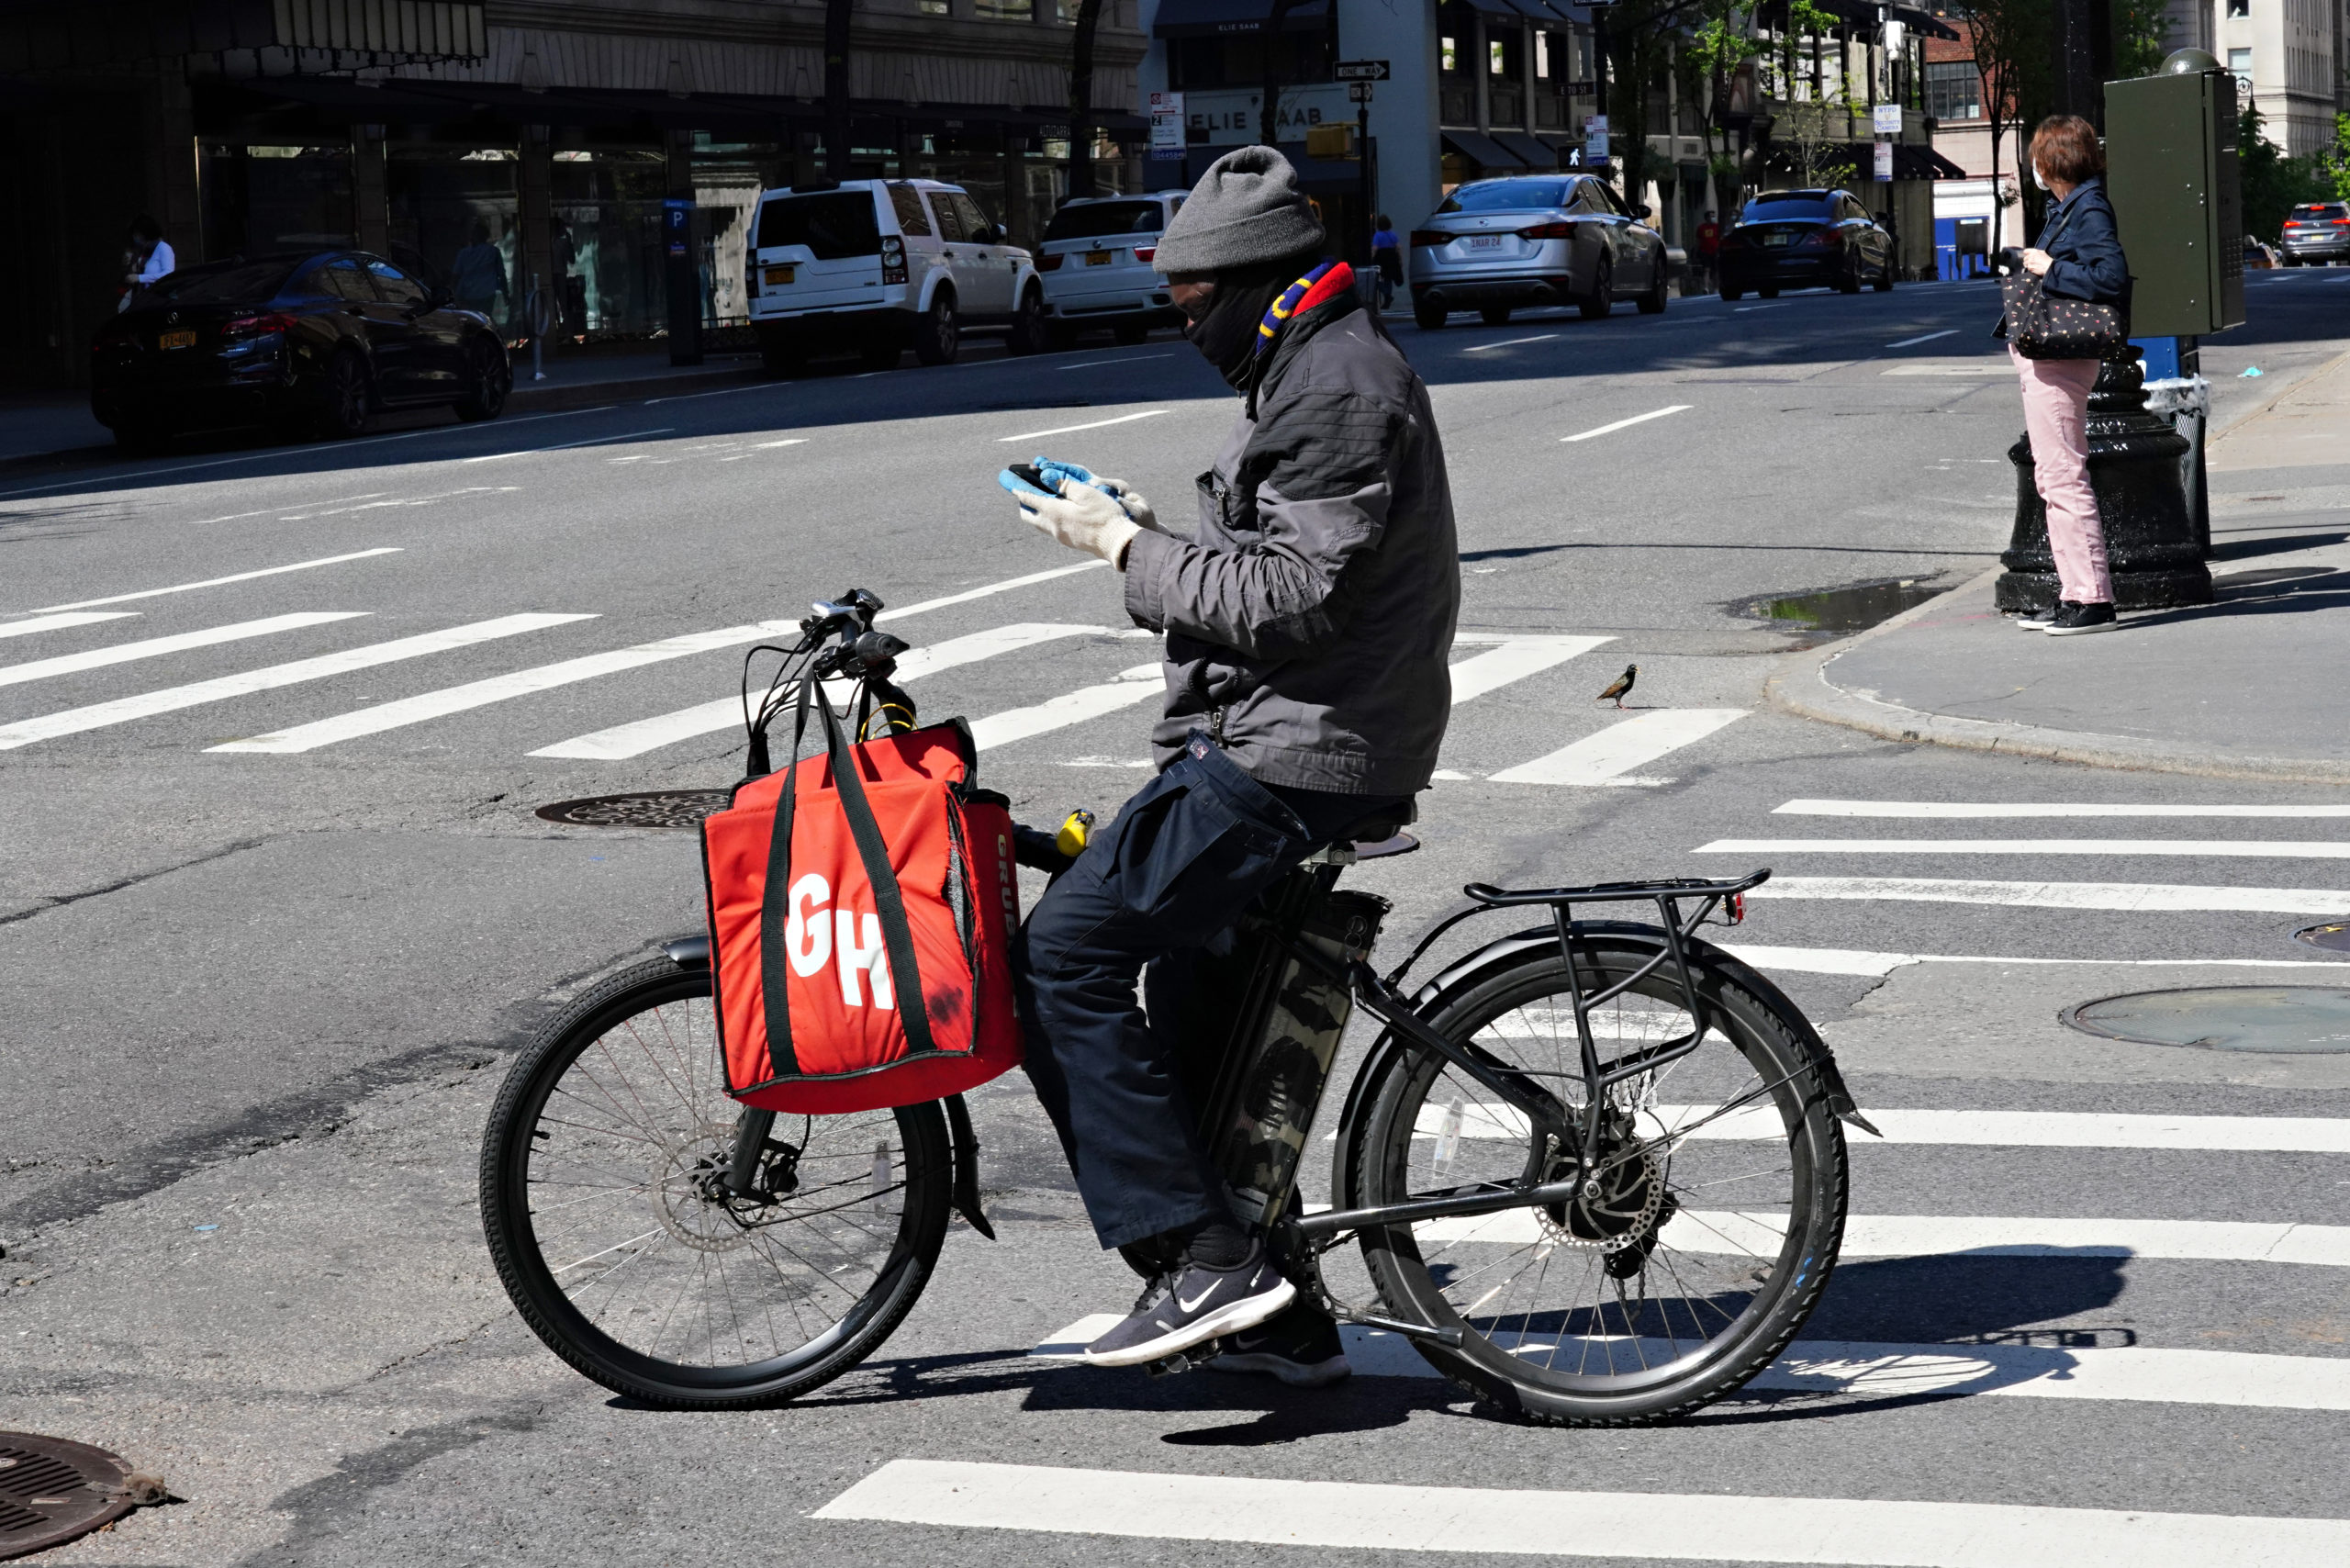 A Grubhub delivery person checks his phone during the coronavirus pandemic on May 3, 2020 in New York City. (Photo by Cindy Ord/Getty Images)